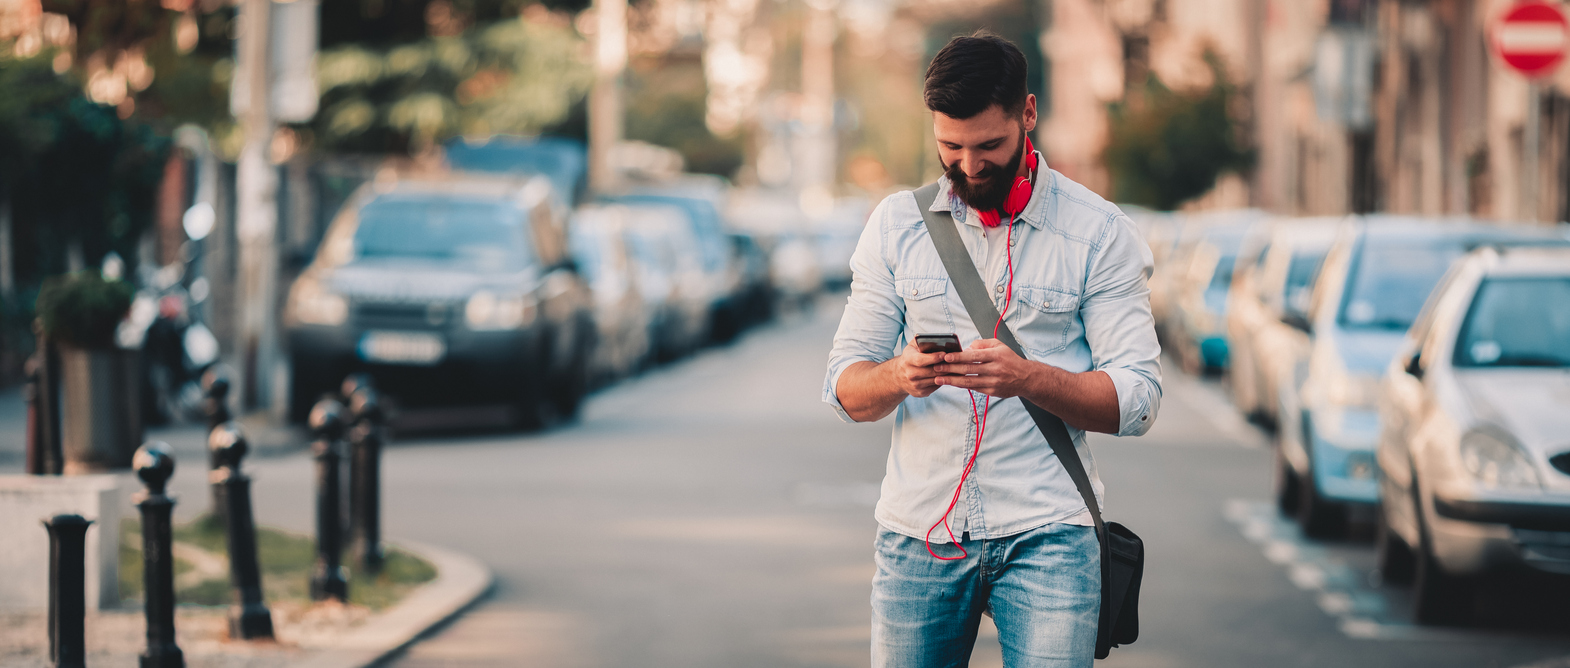 man standing in street looking down at his phone